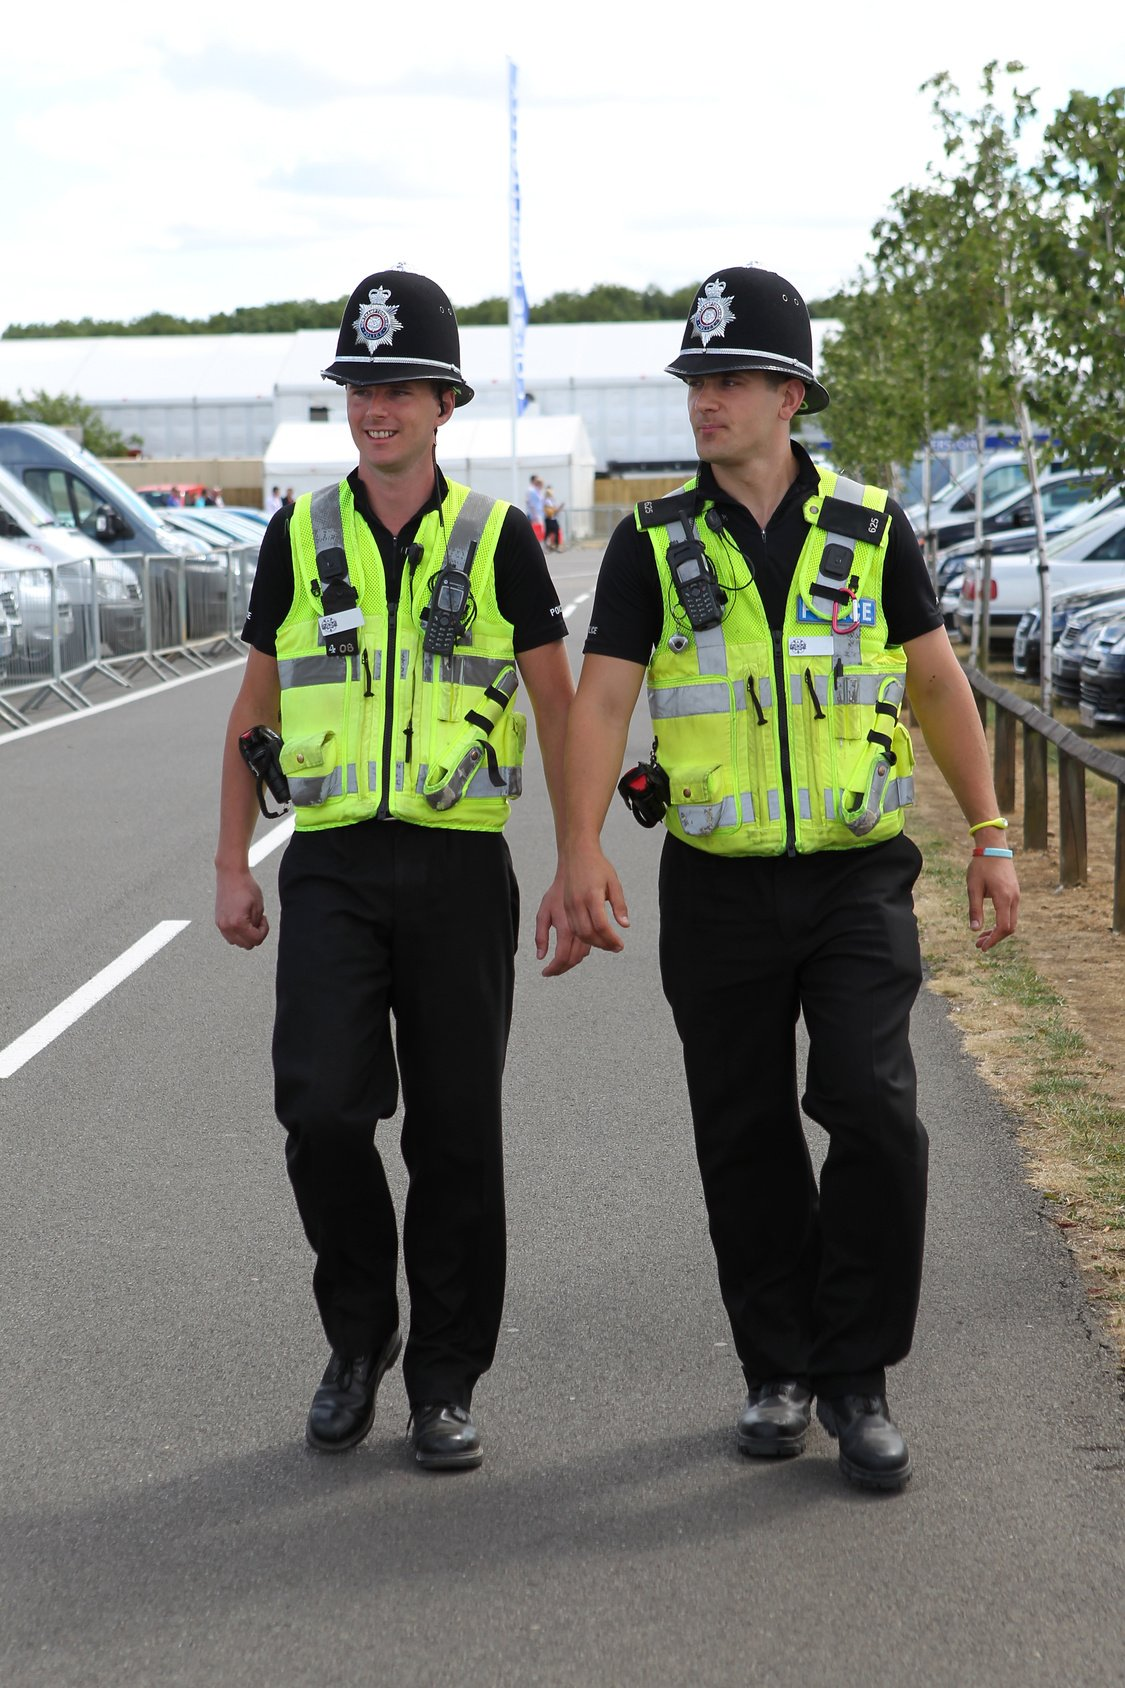 police special constable interview howbecome two british police special constables how to pass the interview